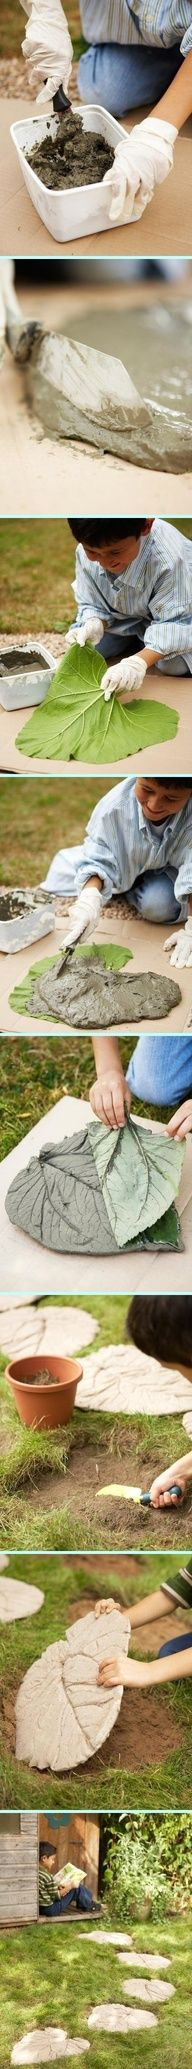 Lay out a piece of contractor's paper or a drop cloth to serve as a work surface. Place your selected leaves facedown.In a bucket or pail, mix two cups of cement with 1 cup of water to create a thick paste. Use a putty knife to spread the cement mixture. Apply a 1/2- to 1-inch-thick layer of the mixture to each leaf. Allow the cement to set for approximately two hours. Flip the mold over, and remove each leaf…